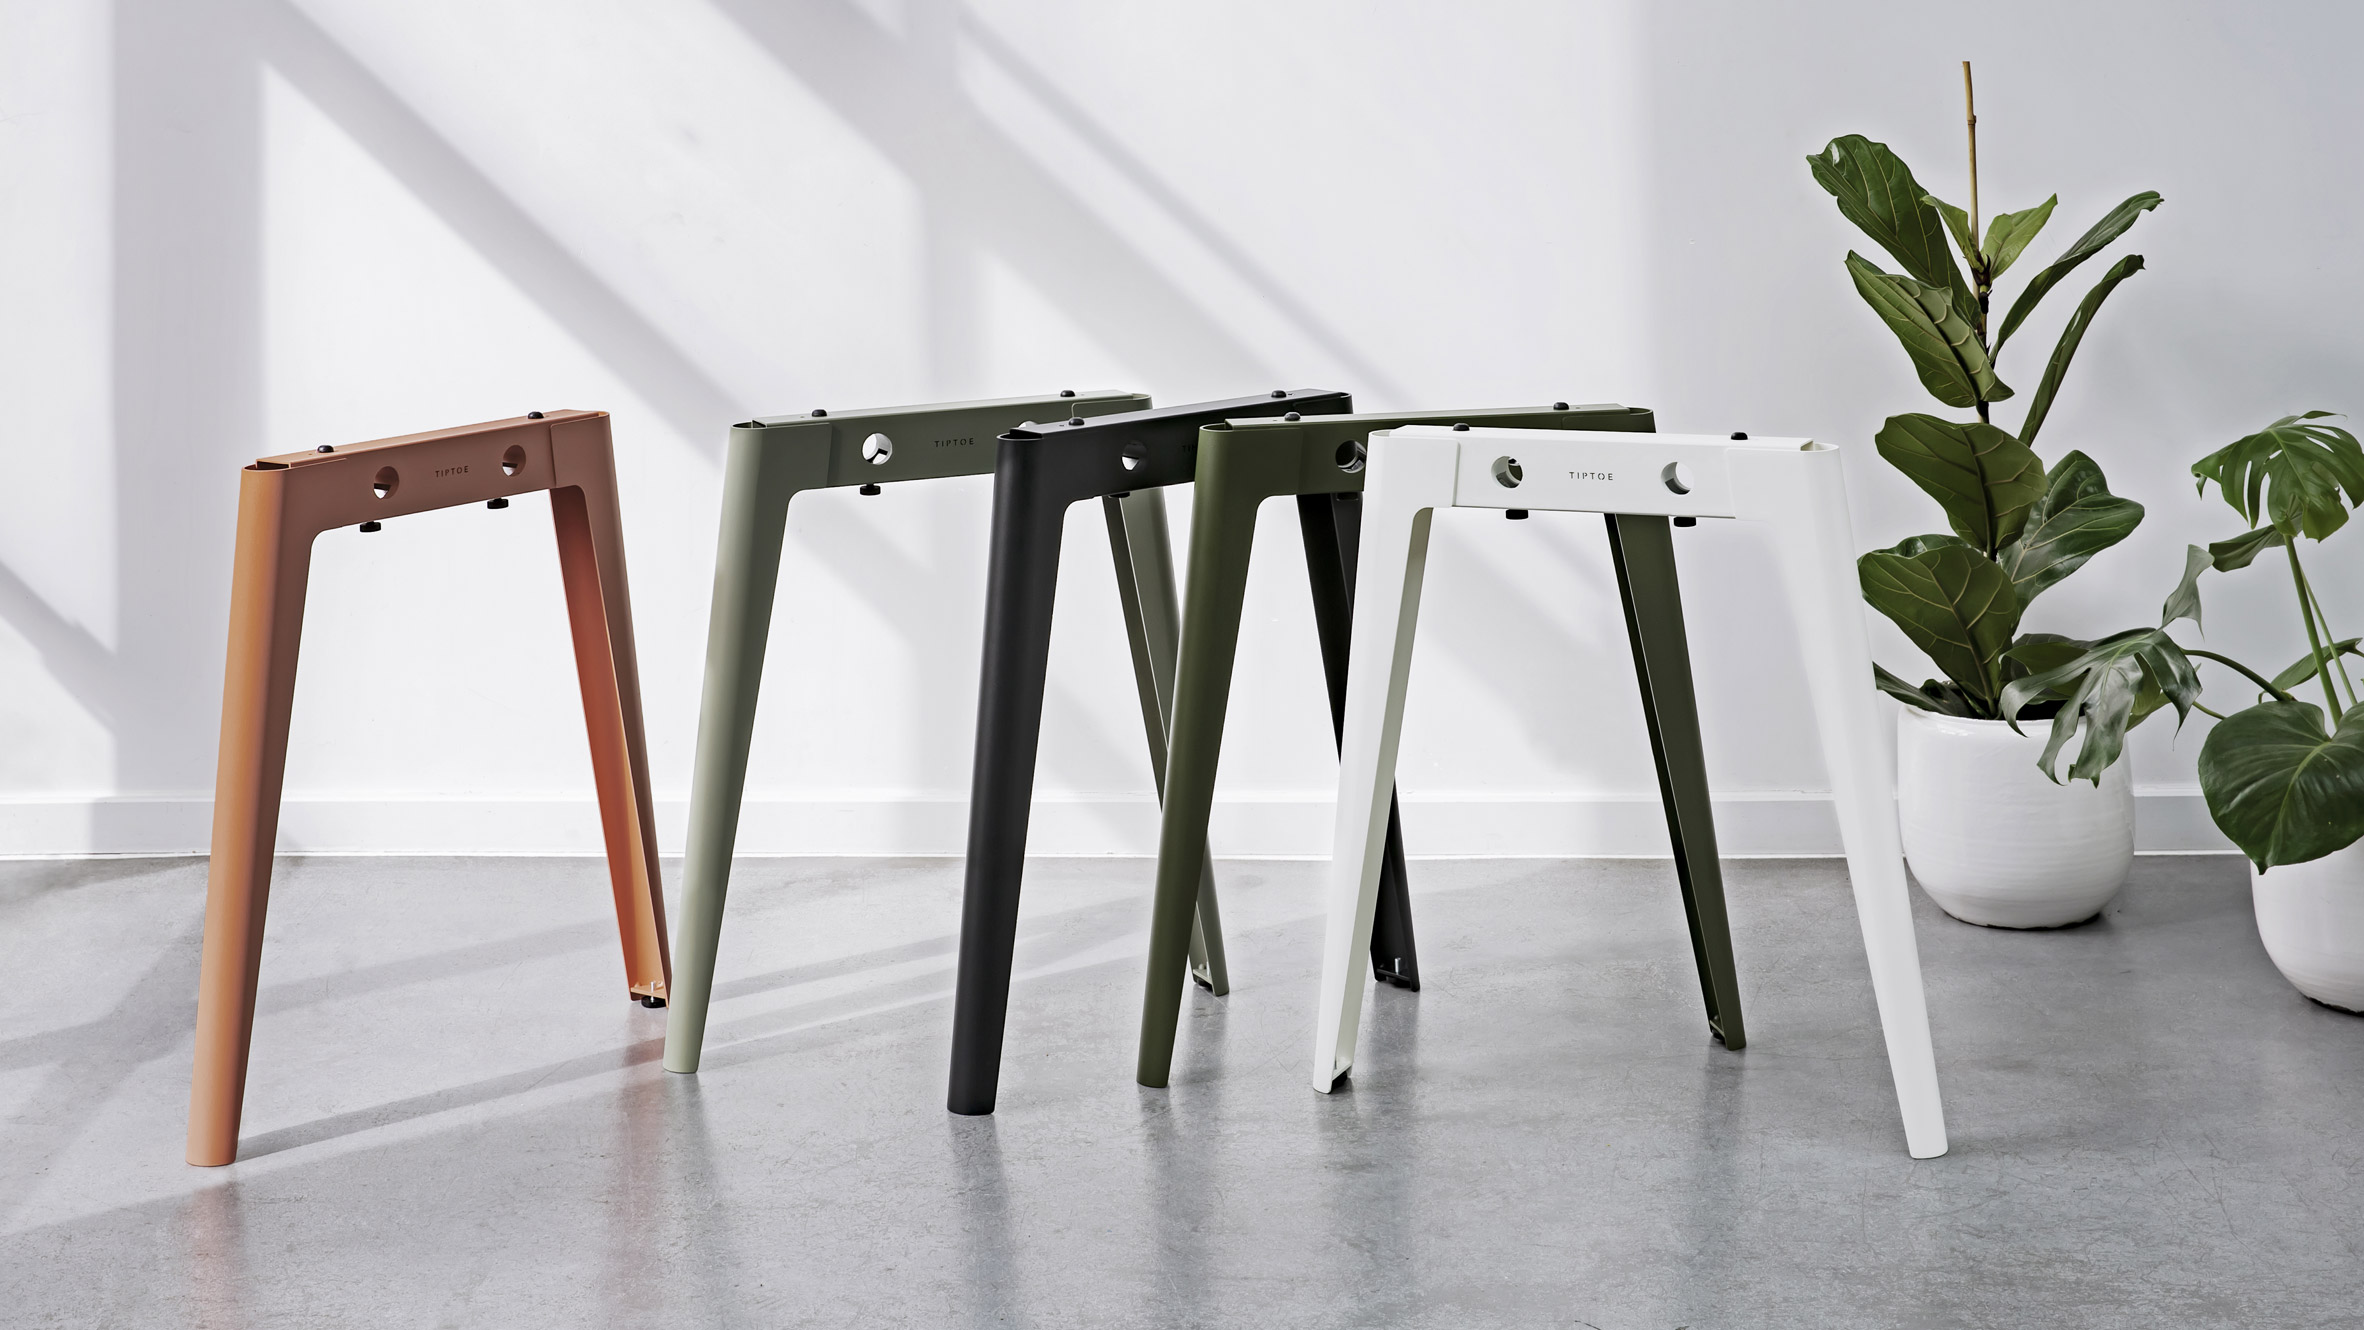 New Modern table legs in Cloudy White, Graphite Black, Rosemary Green, Eucalyptus Grey and Ash Pink